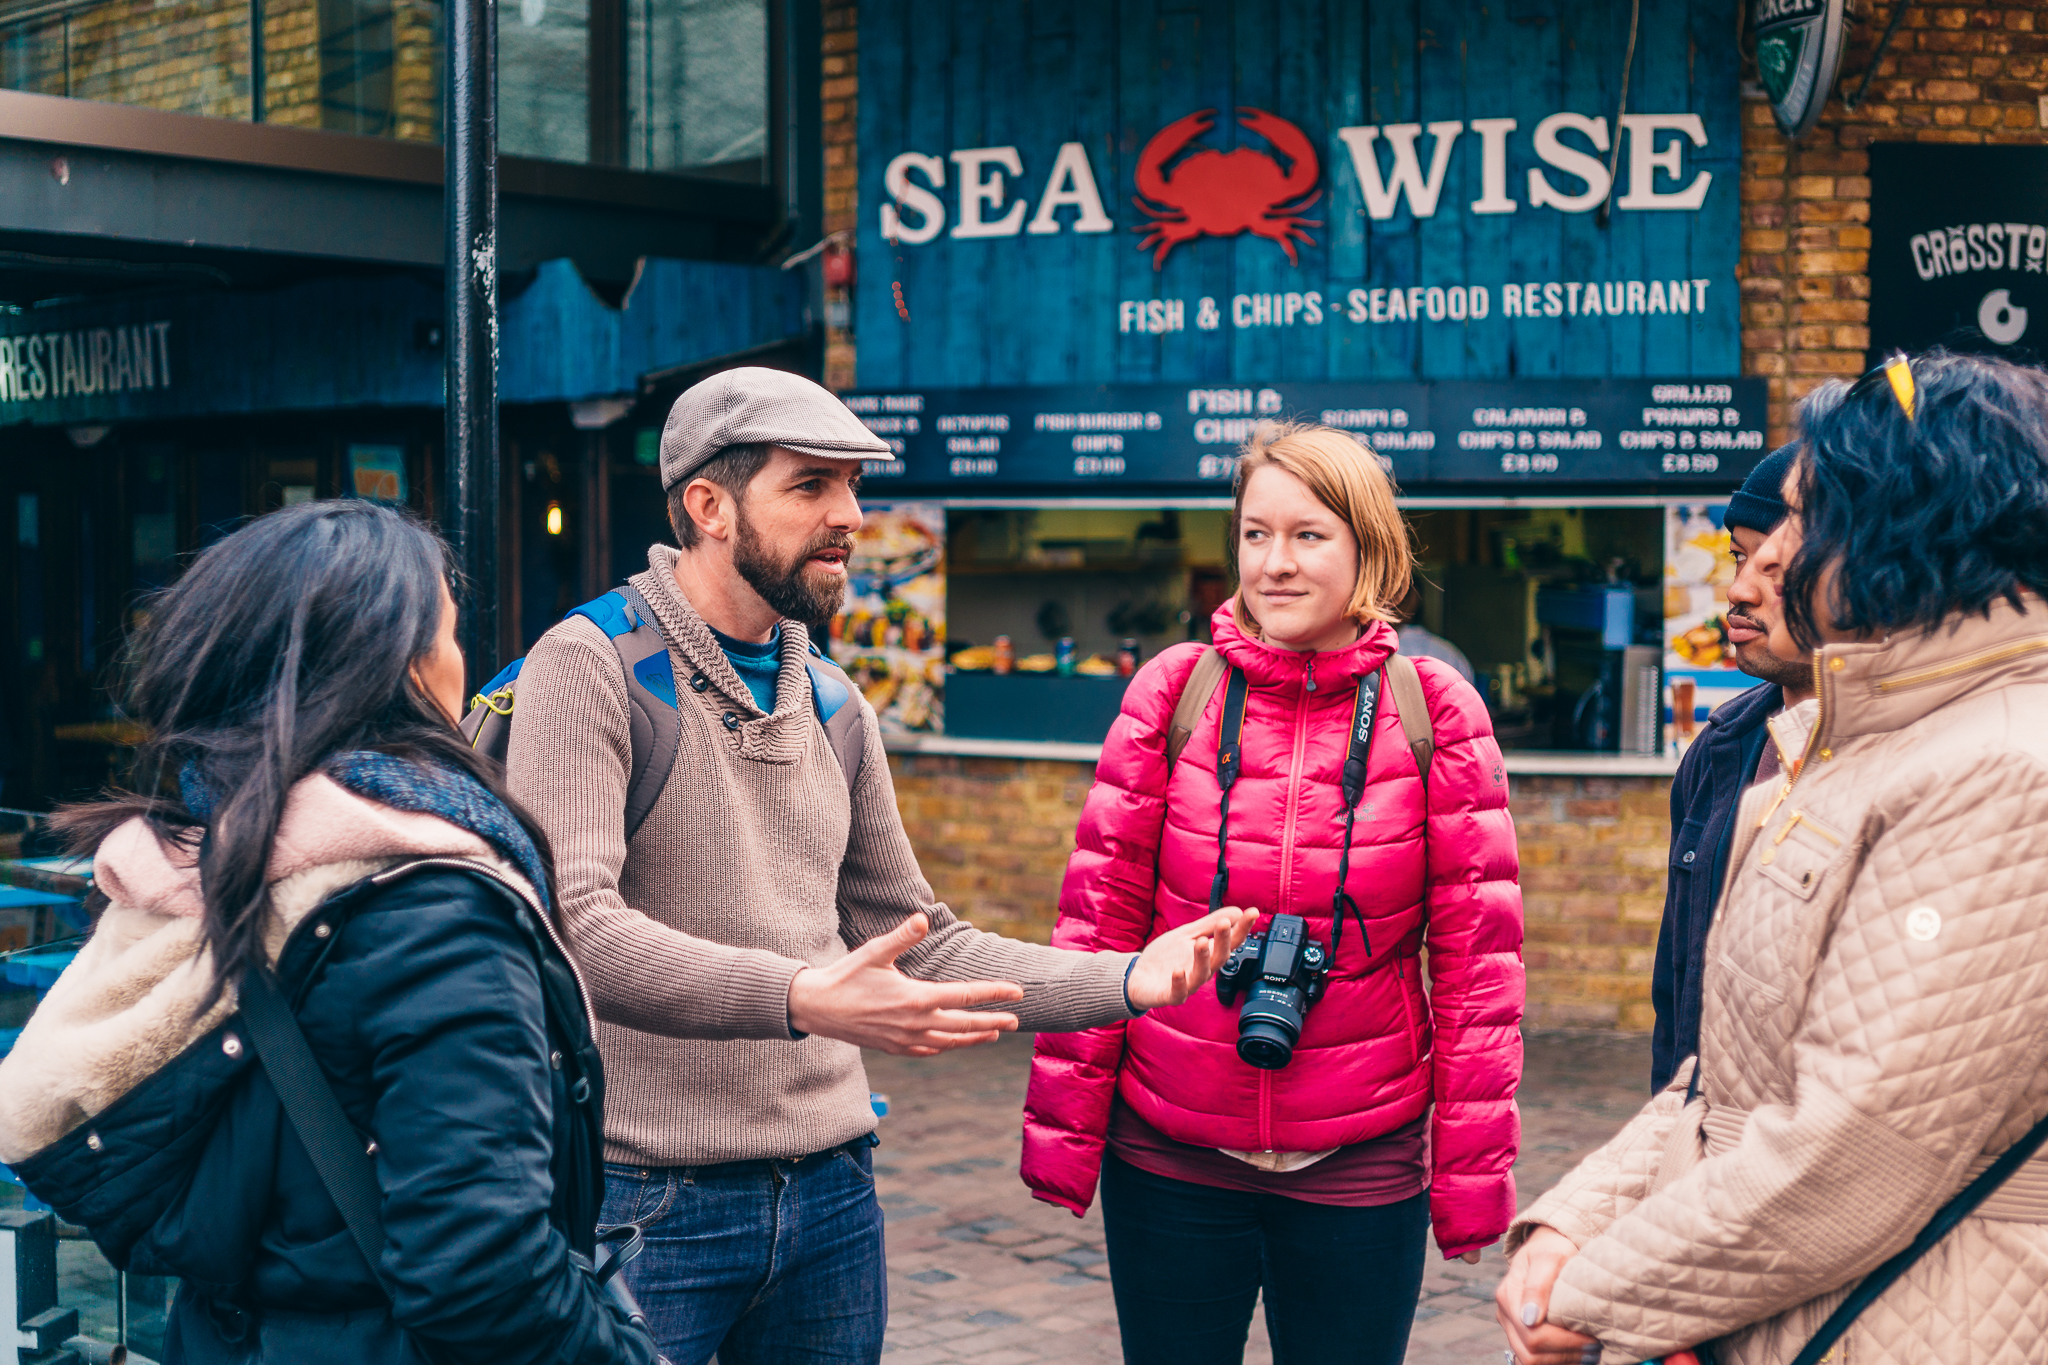 Things to do in London on a Budget - Free Walking Tours-4.jpg